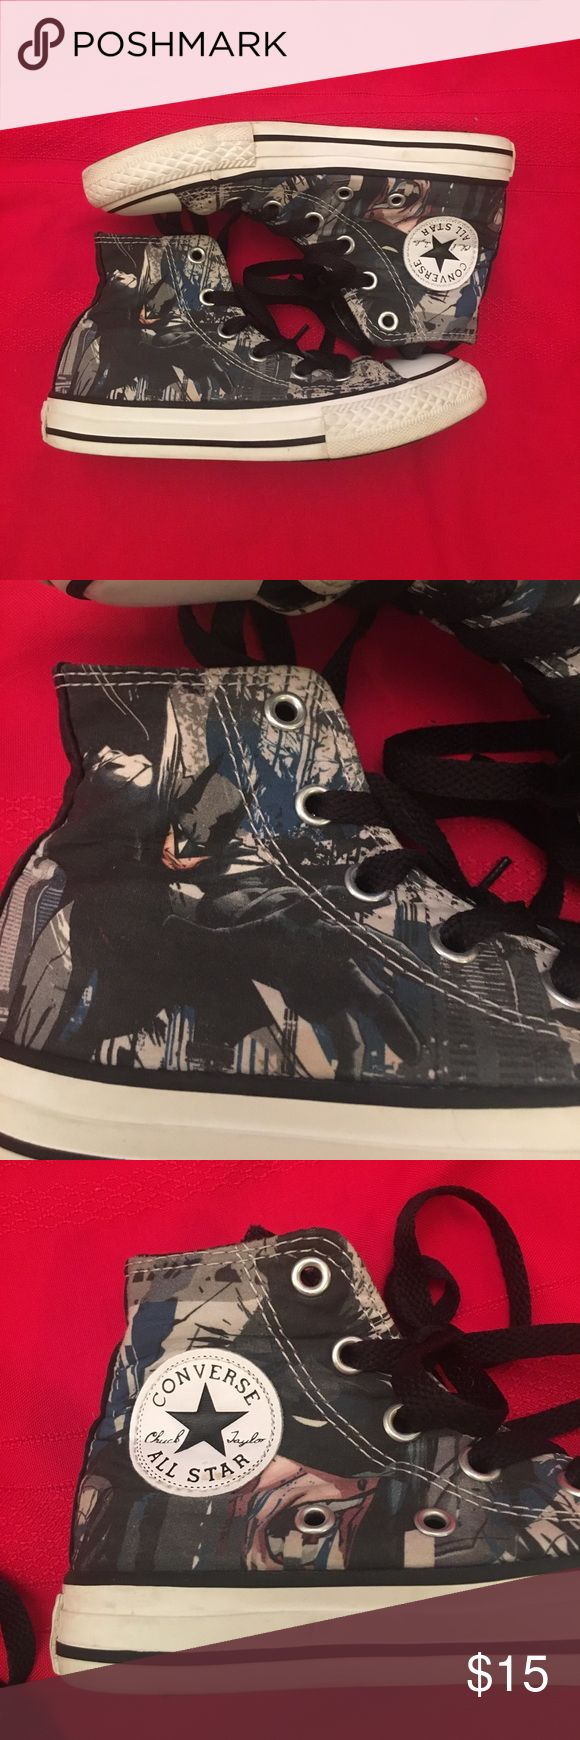 Boys Comic Batman Converse All Star Chucks These are super awesome!! They have batman on them! The back label is worn on both shoes but otherwise great condition! Converse Shoes Sneakers